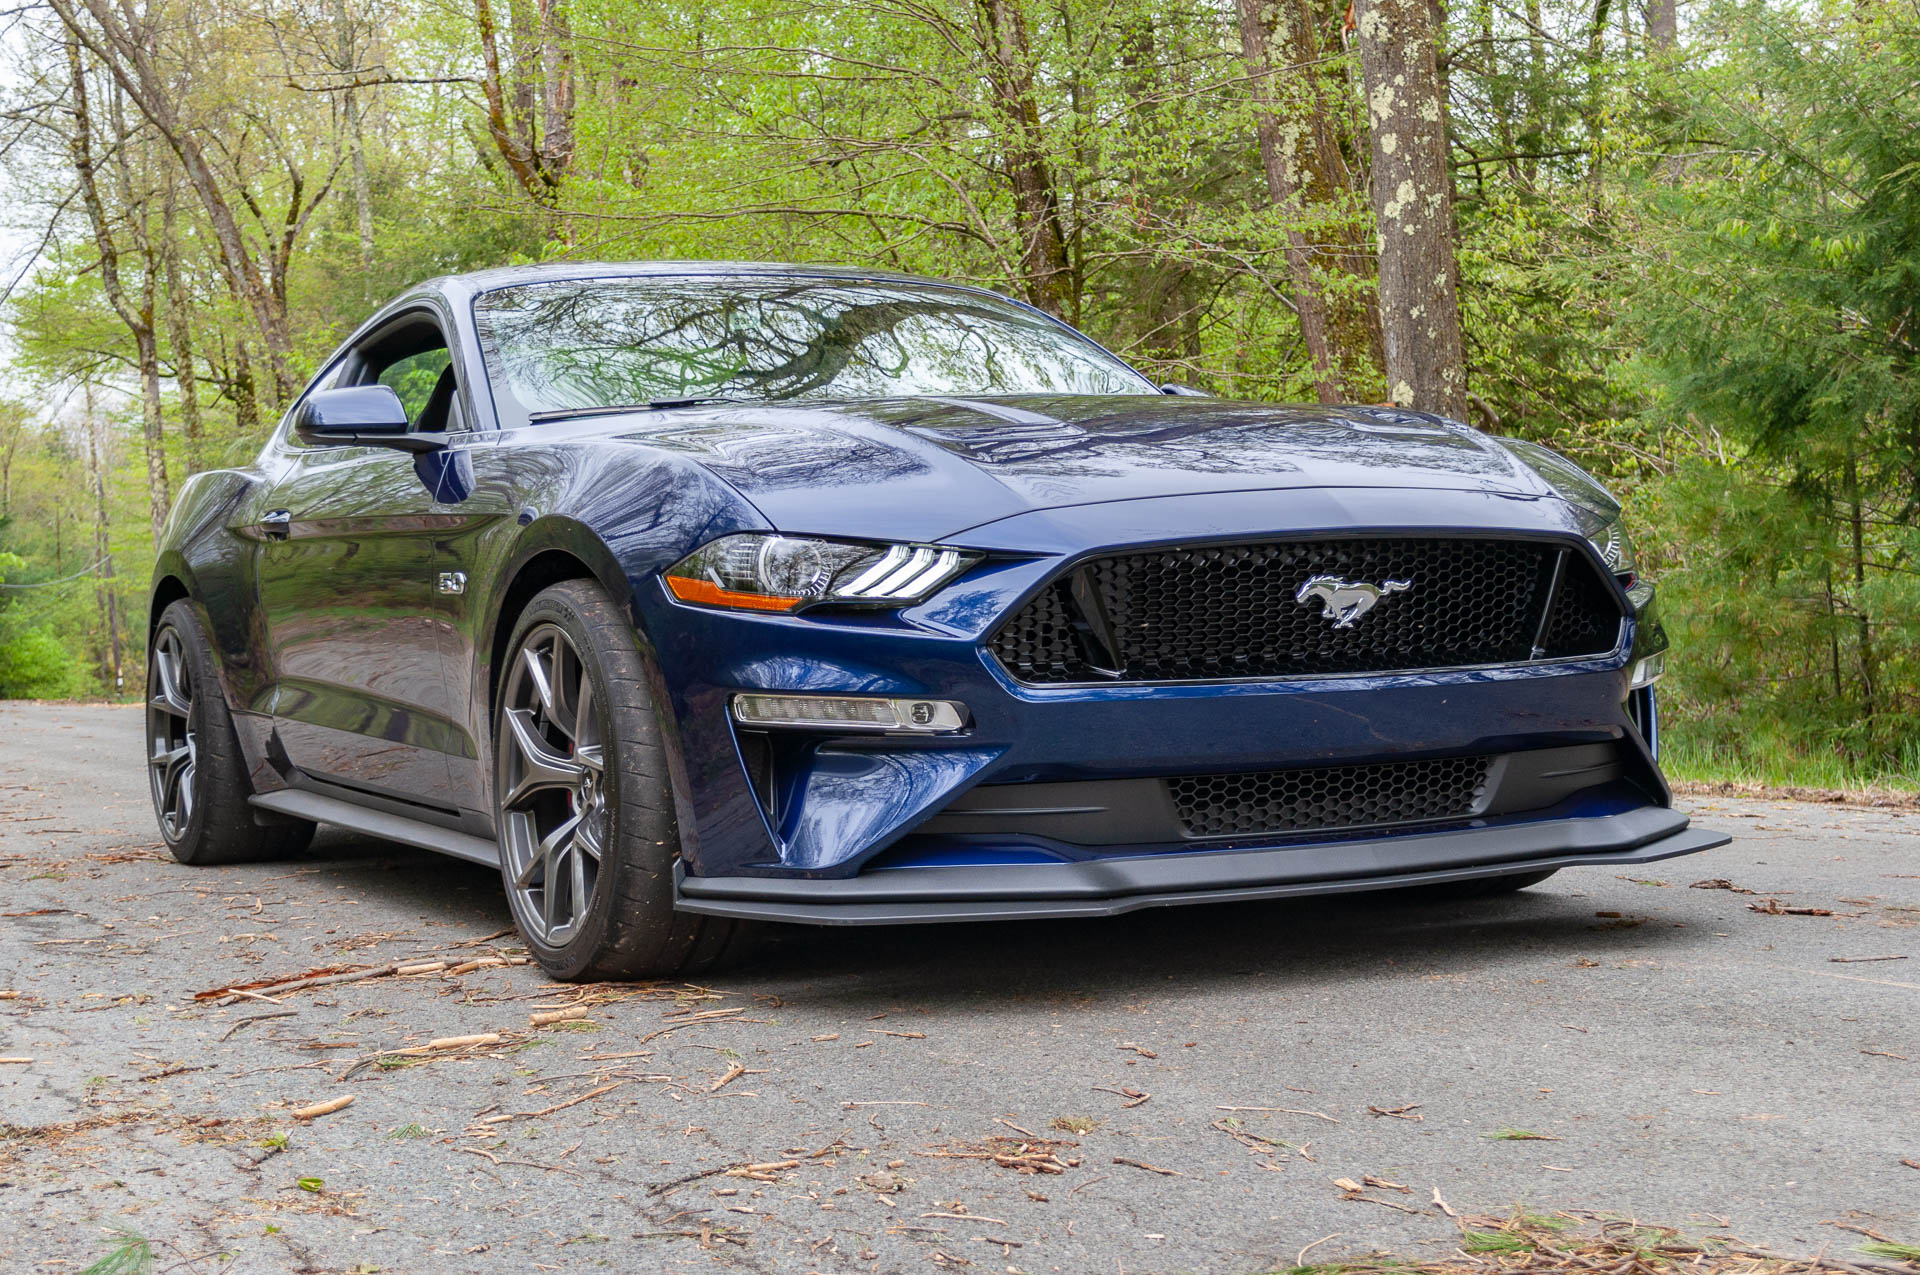 Motor authority best car to buy 2019 nominee ford mustang gt